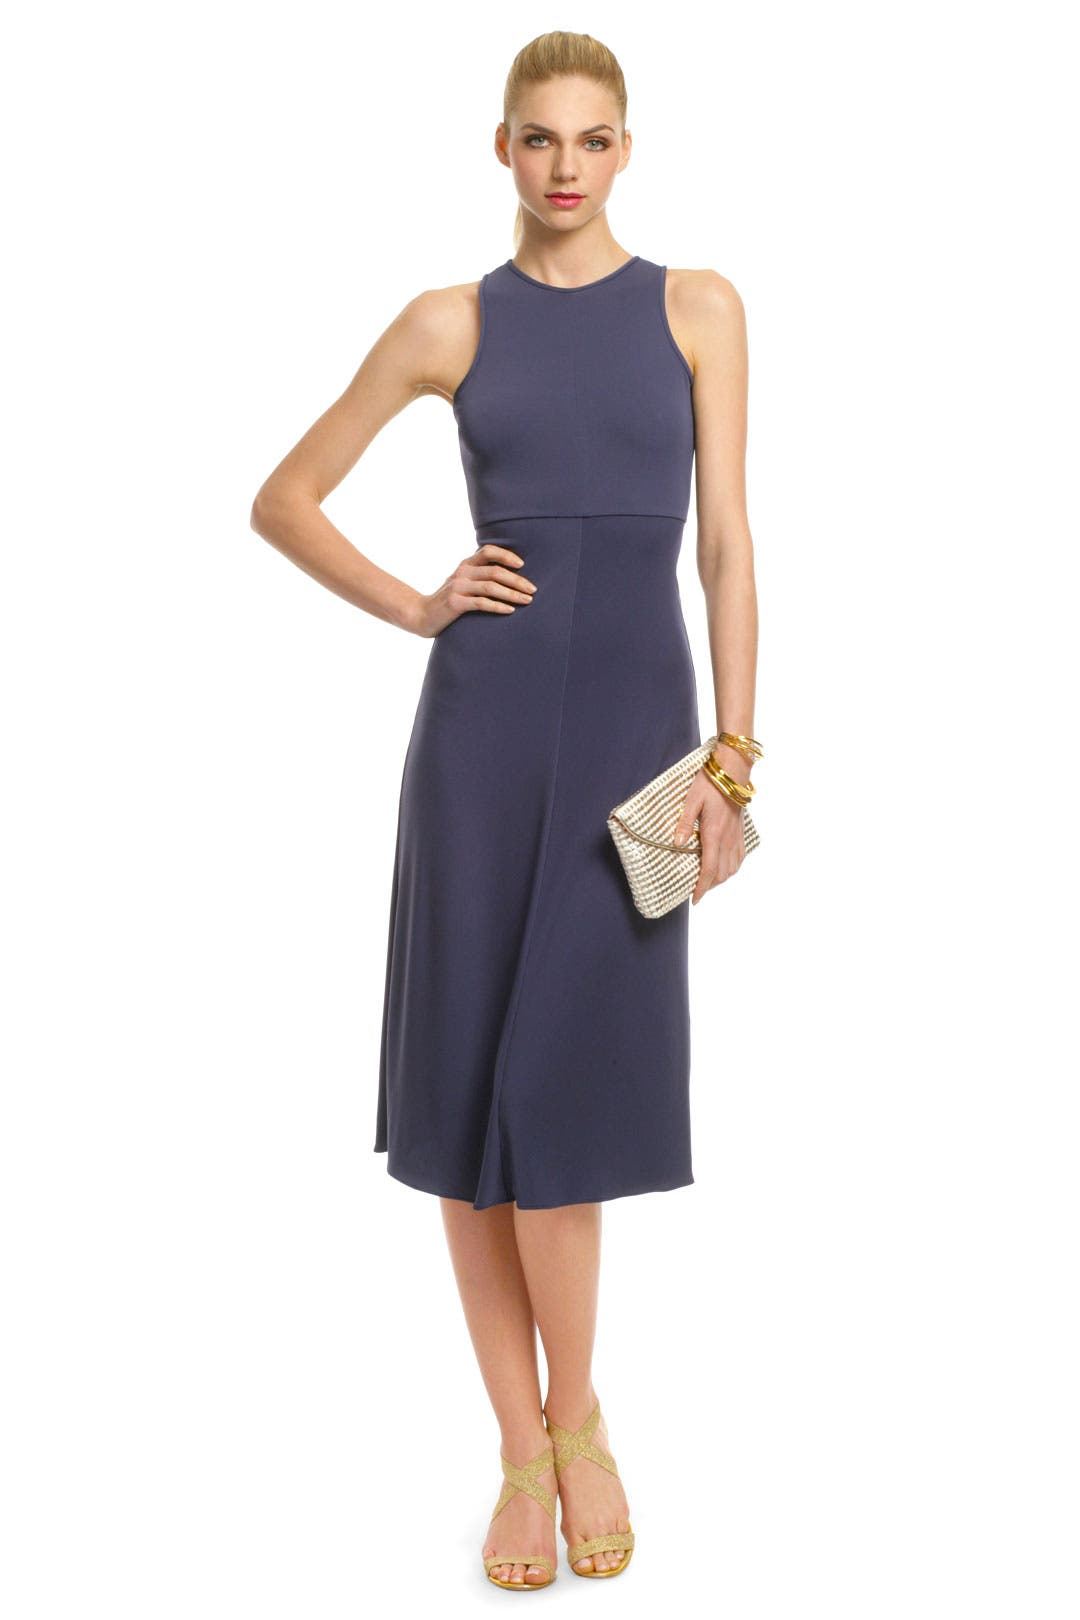 Work It Girl Dress by Tibi